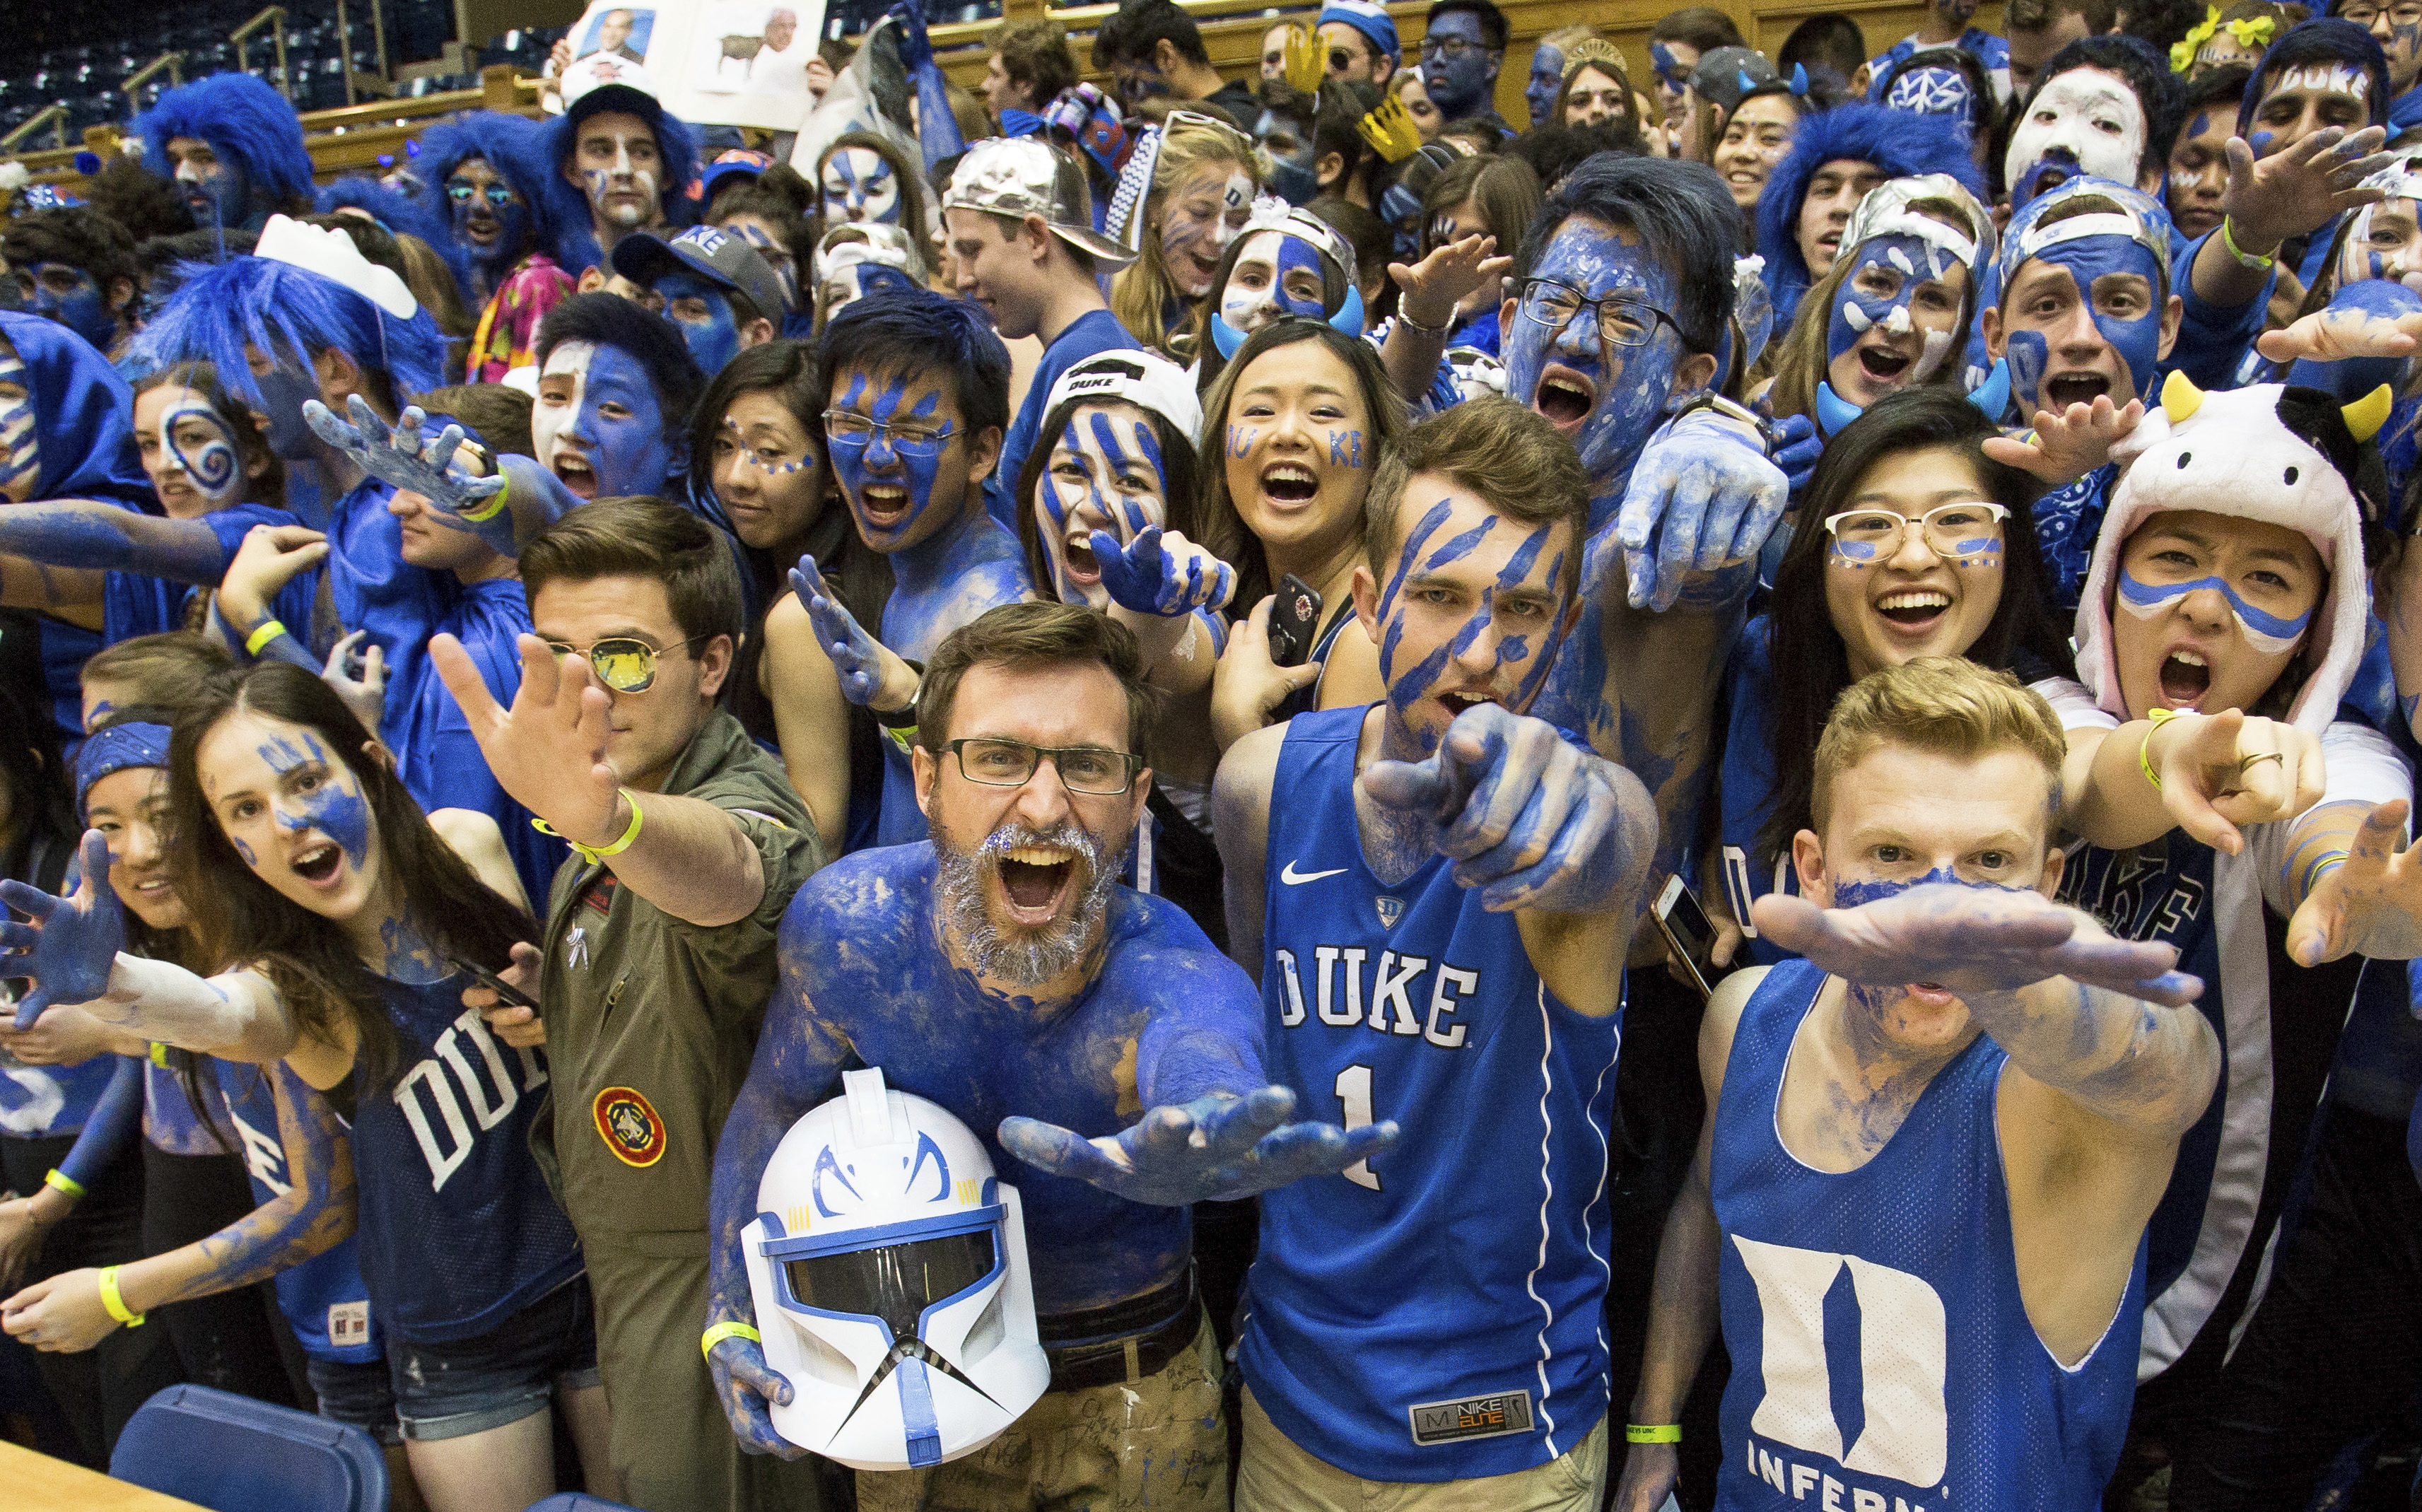 <div class='meta'><div class='origin-logo' data-origin='none'></div><span class='caption-text' data-credit='AP Photo/Ben McKeown'>The Cameron Crazies cheer as they await the start of an NCAA college basketball game</span></div>